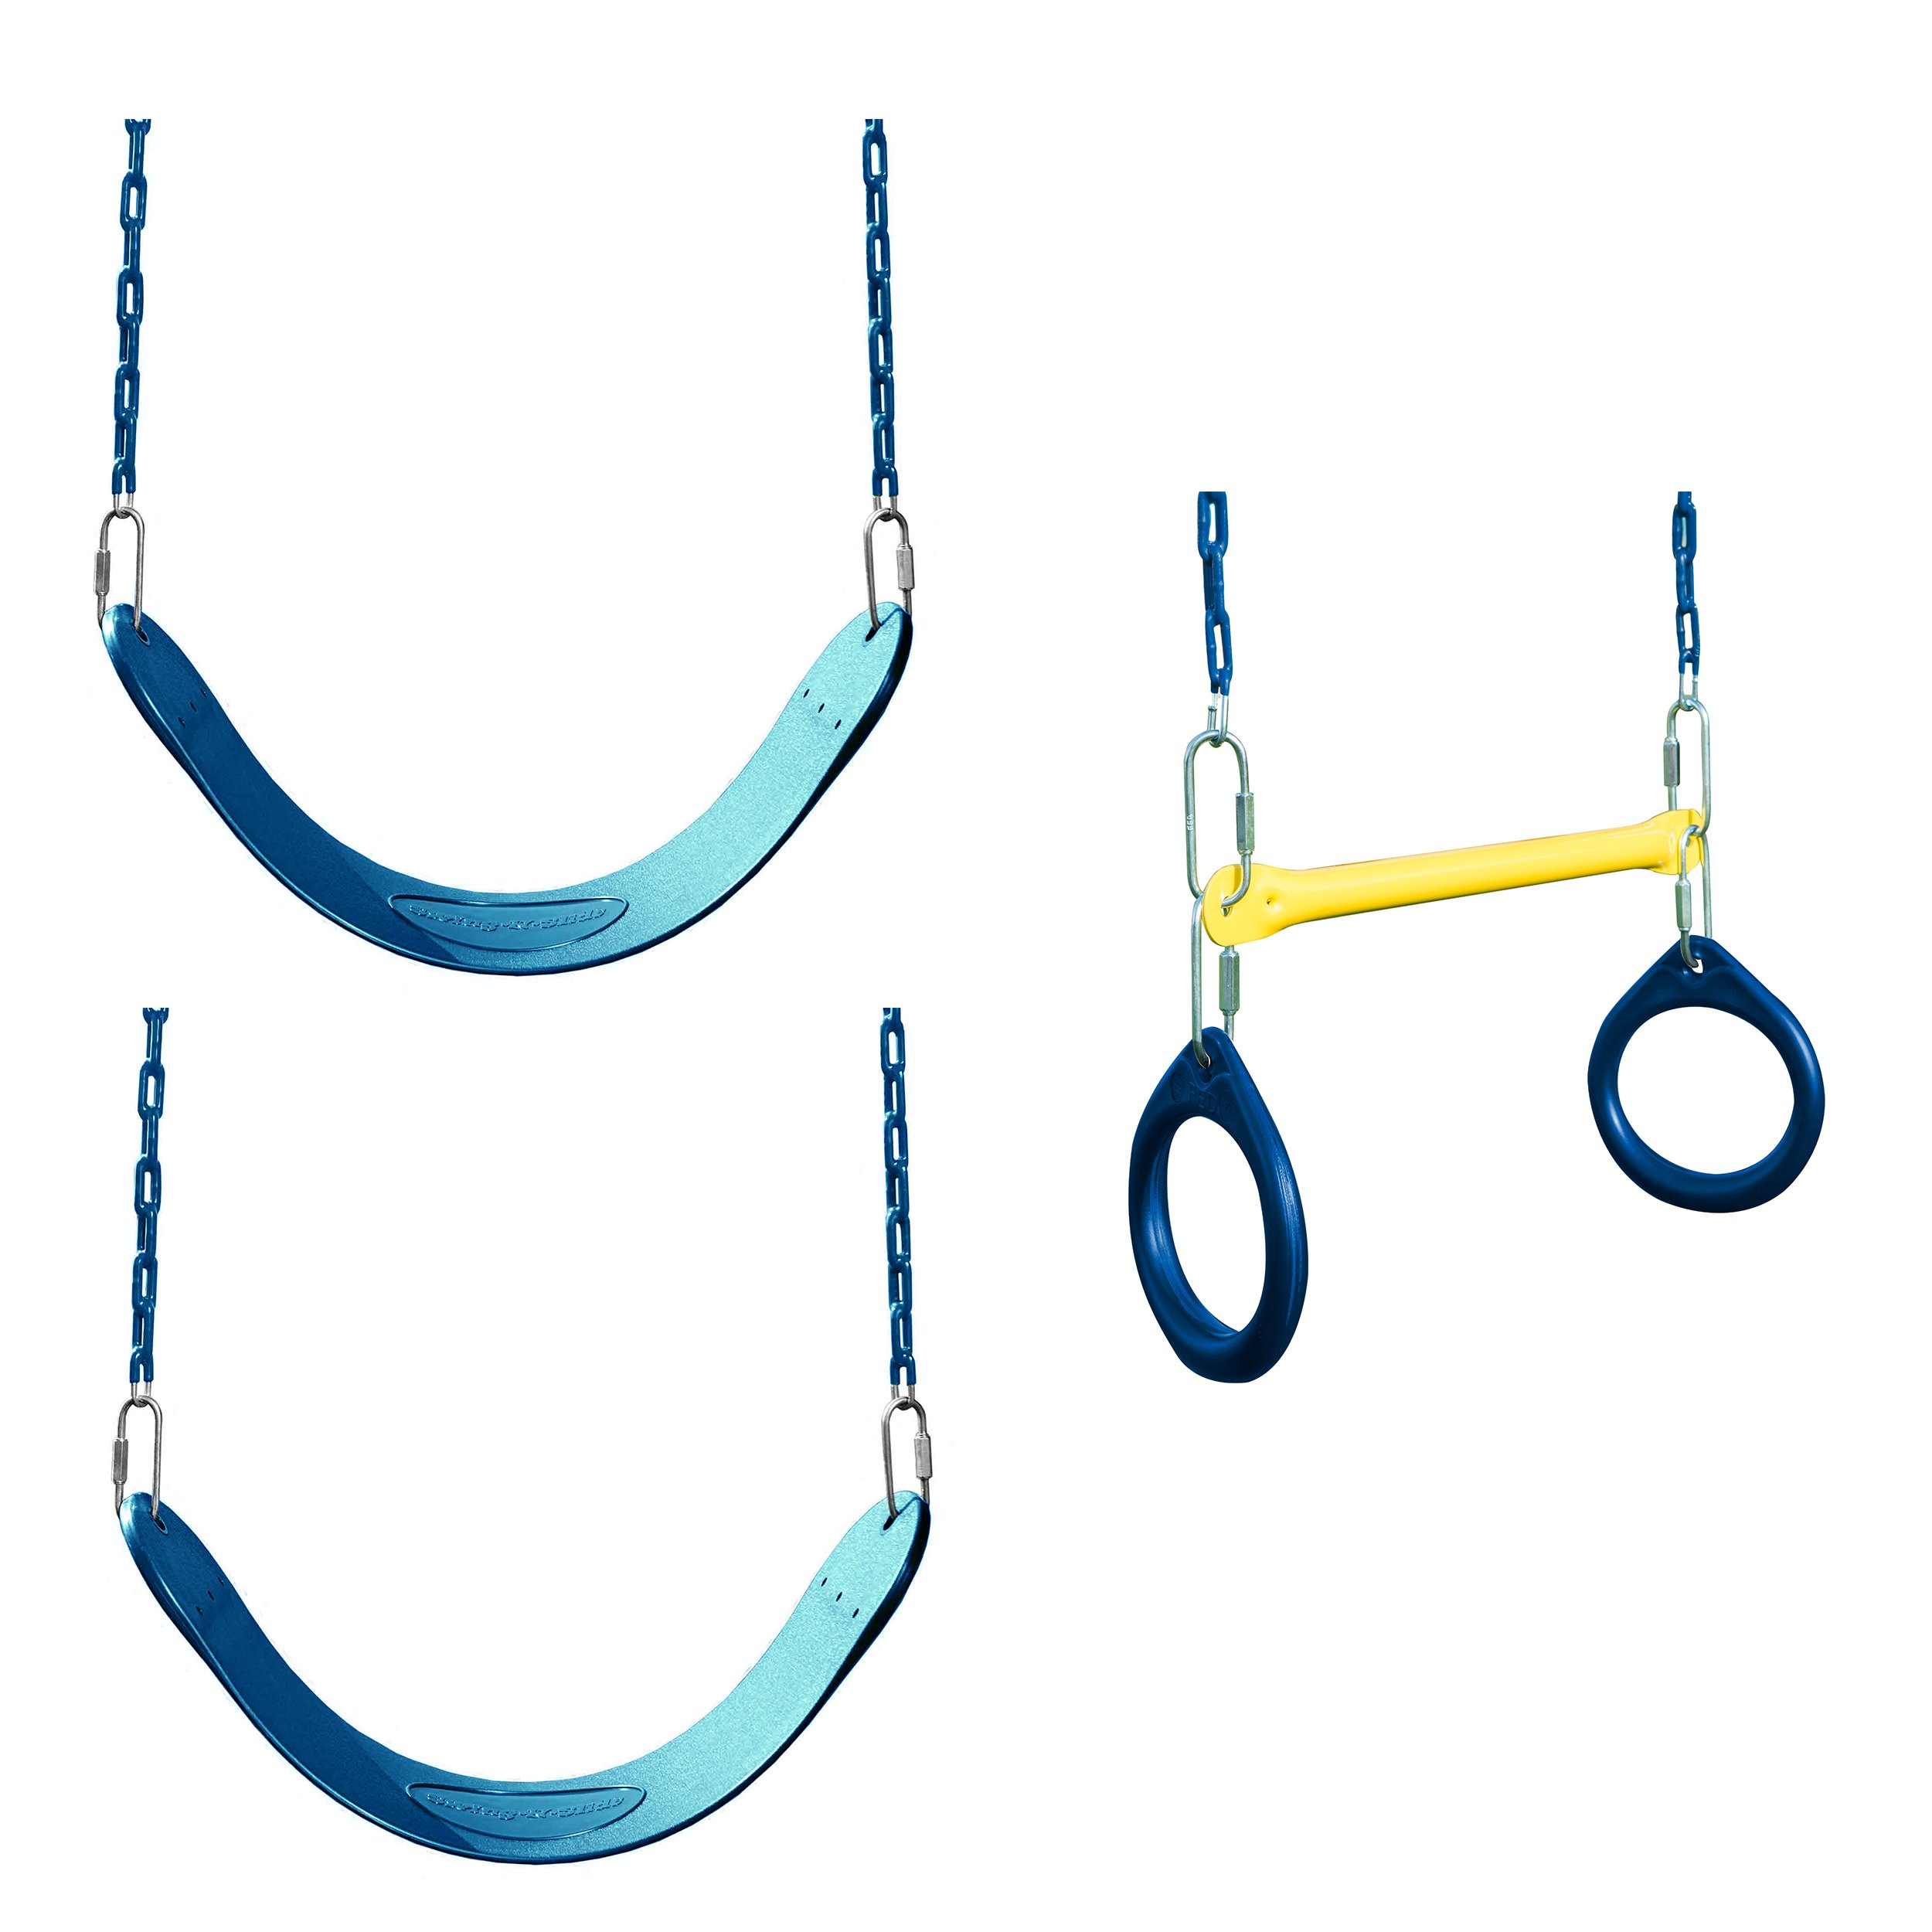 Swing Seat and Ring/Trapeze Bundle - Includes 2 Blue Belted Swing Seats and a Trapeze Combo Swing for Swing Sets, Play Sets, etc. by Swing-N-Slide (Image #1)